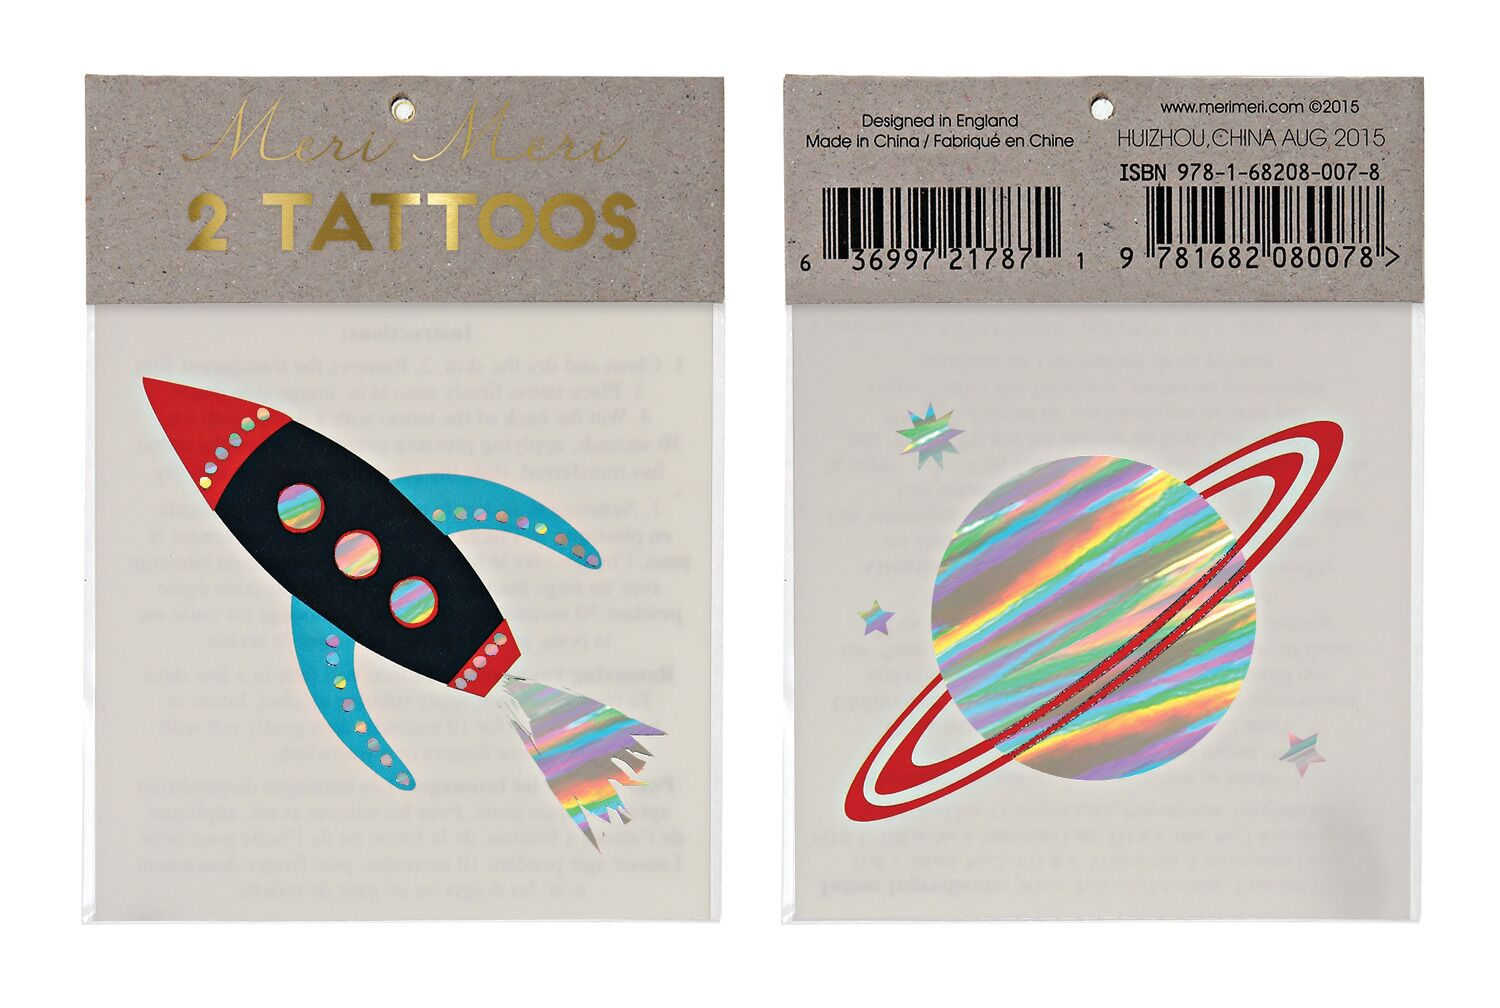 Spacecraft Tattoos Meri Meri